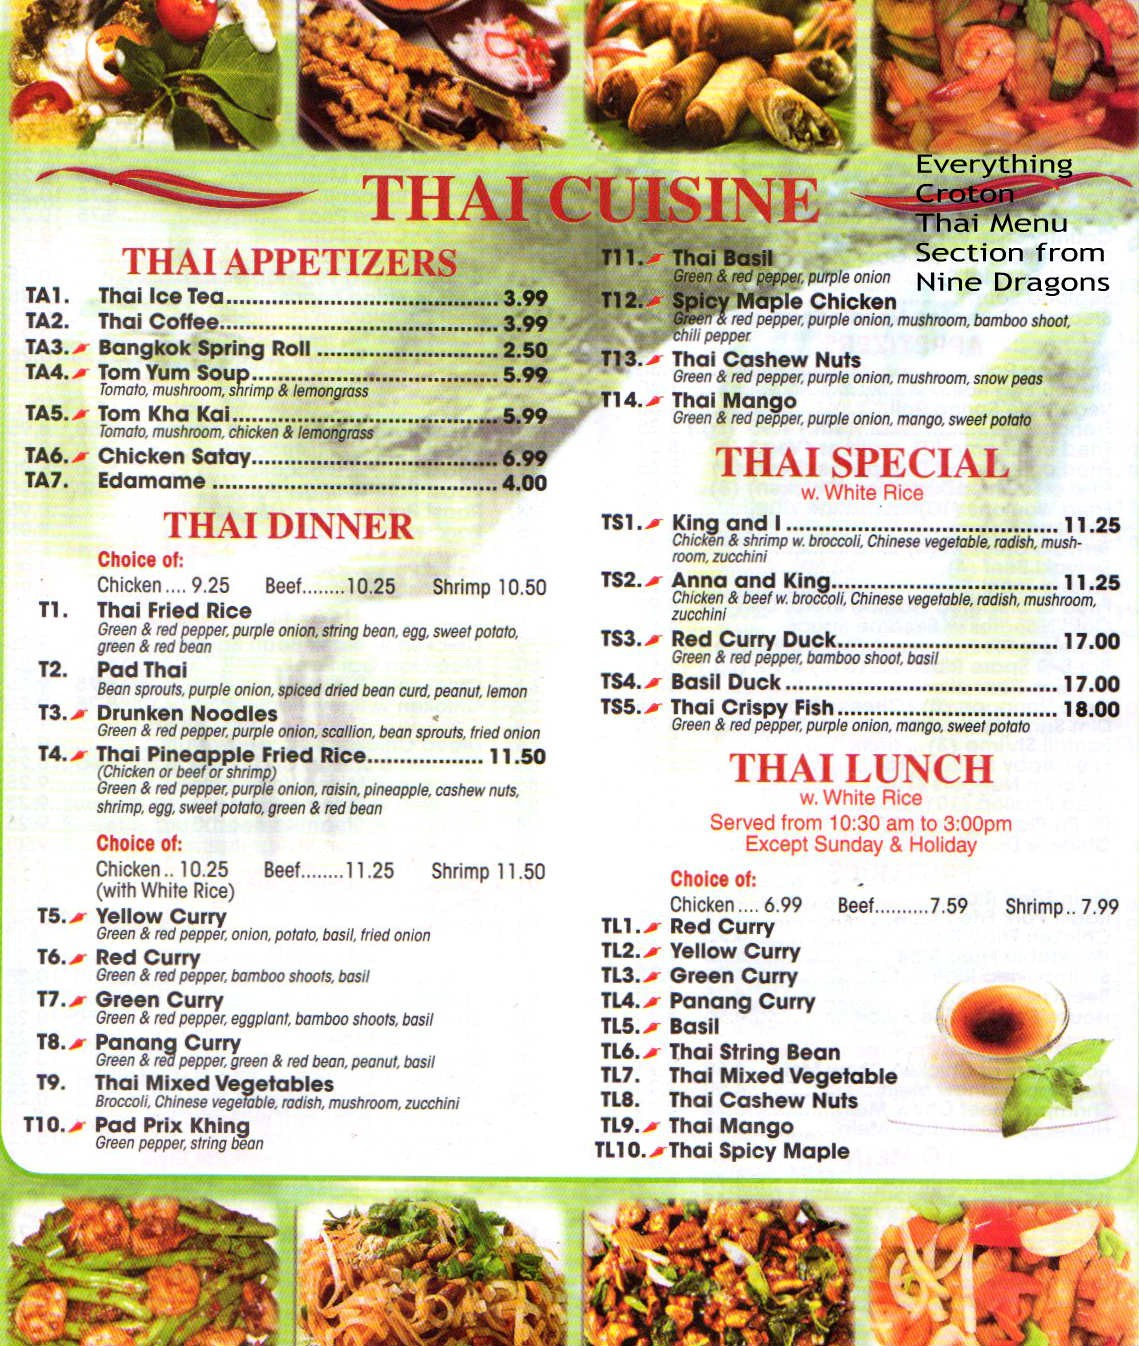 EverythingCroton: AN UPDATE ON THAI FOOD IN CROTON--NINE DRAGONS